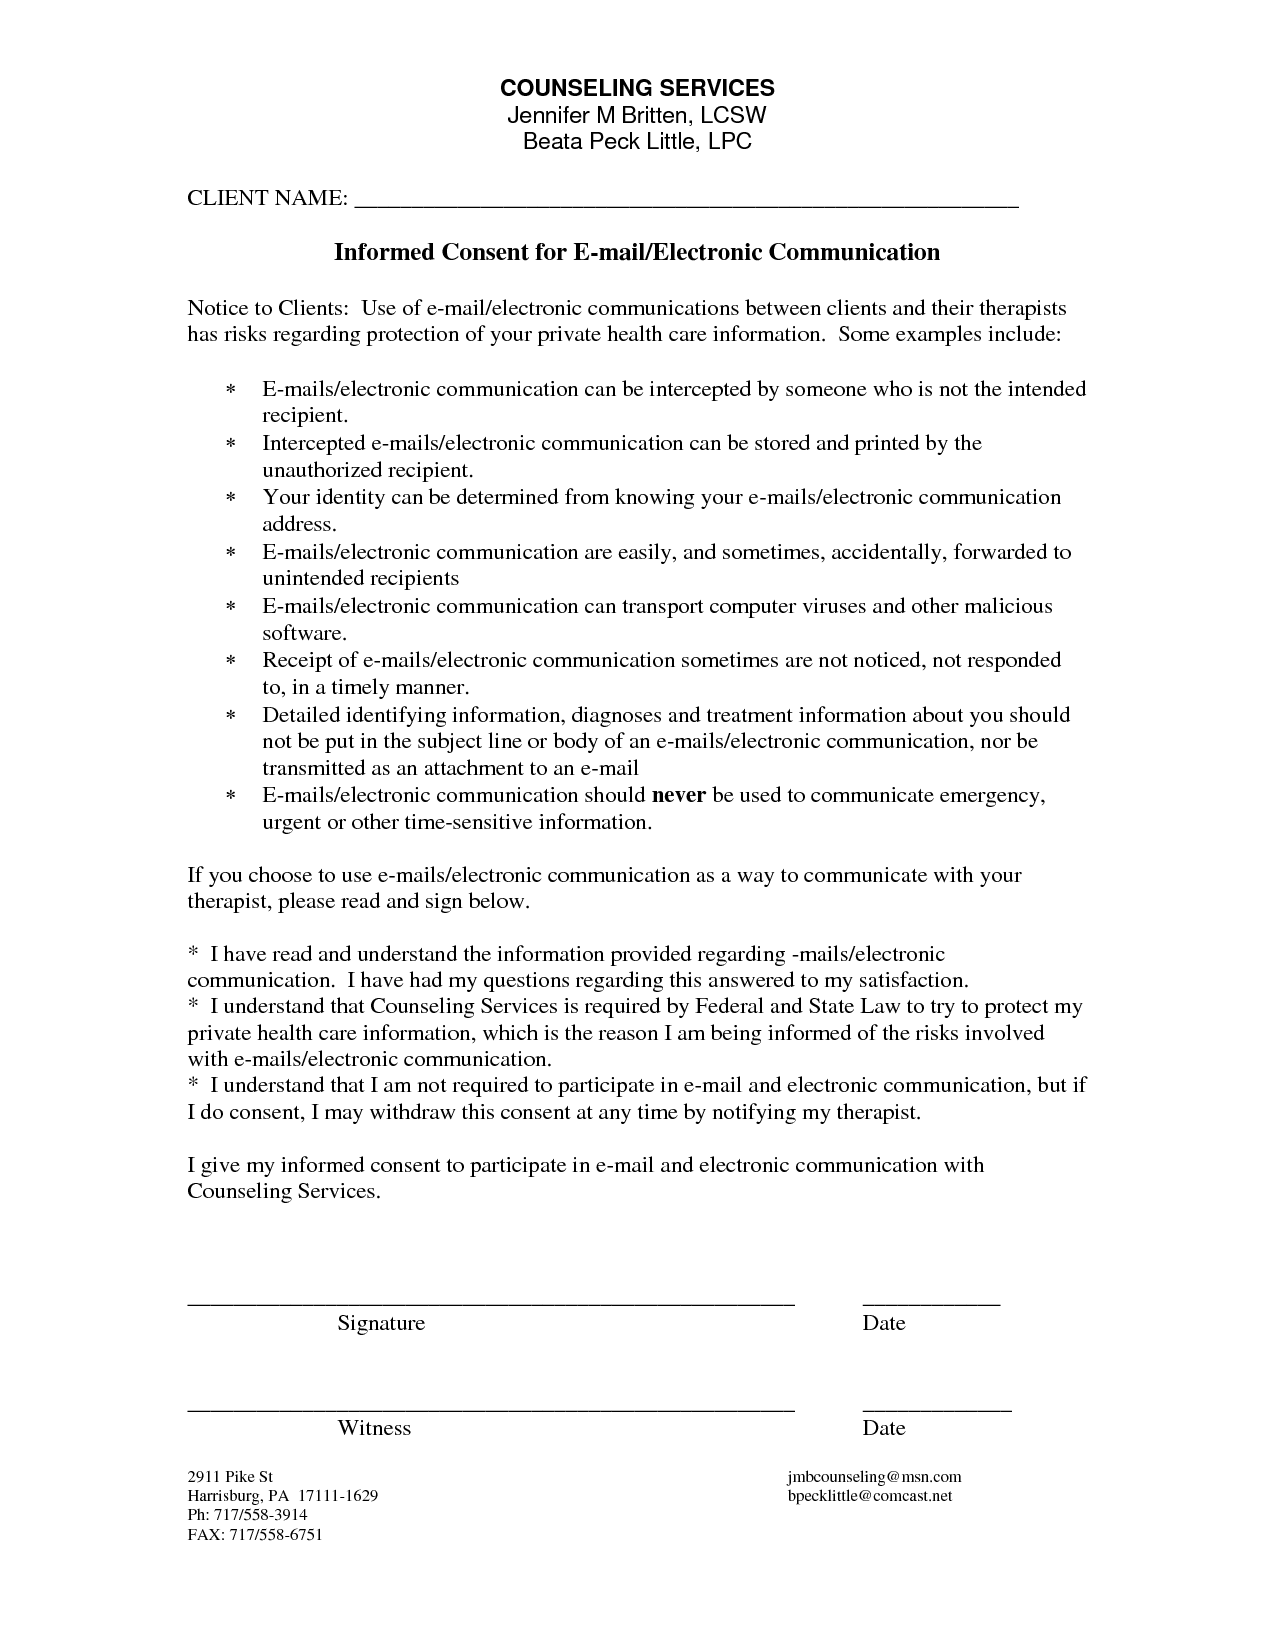 informed consent in the counseling relationship stages